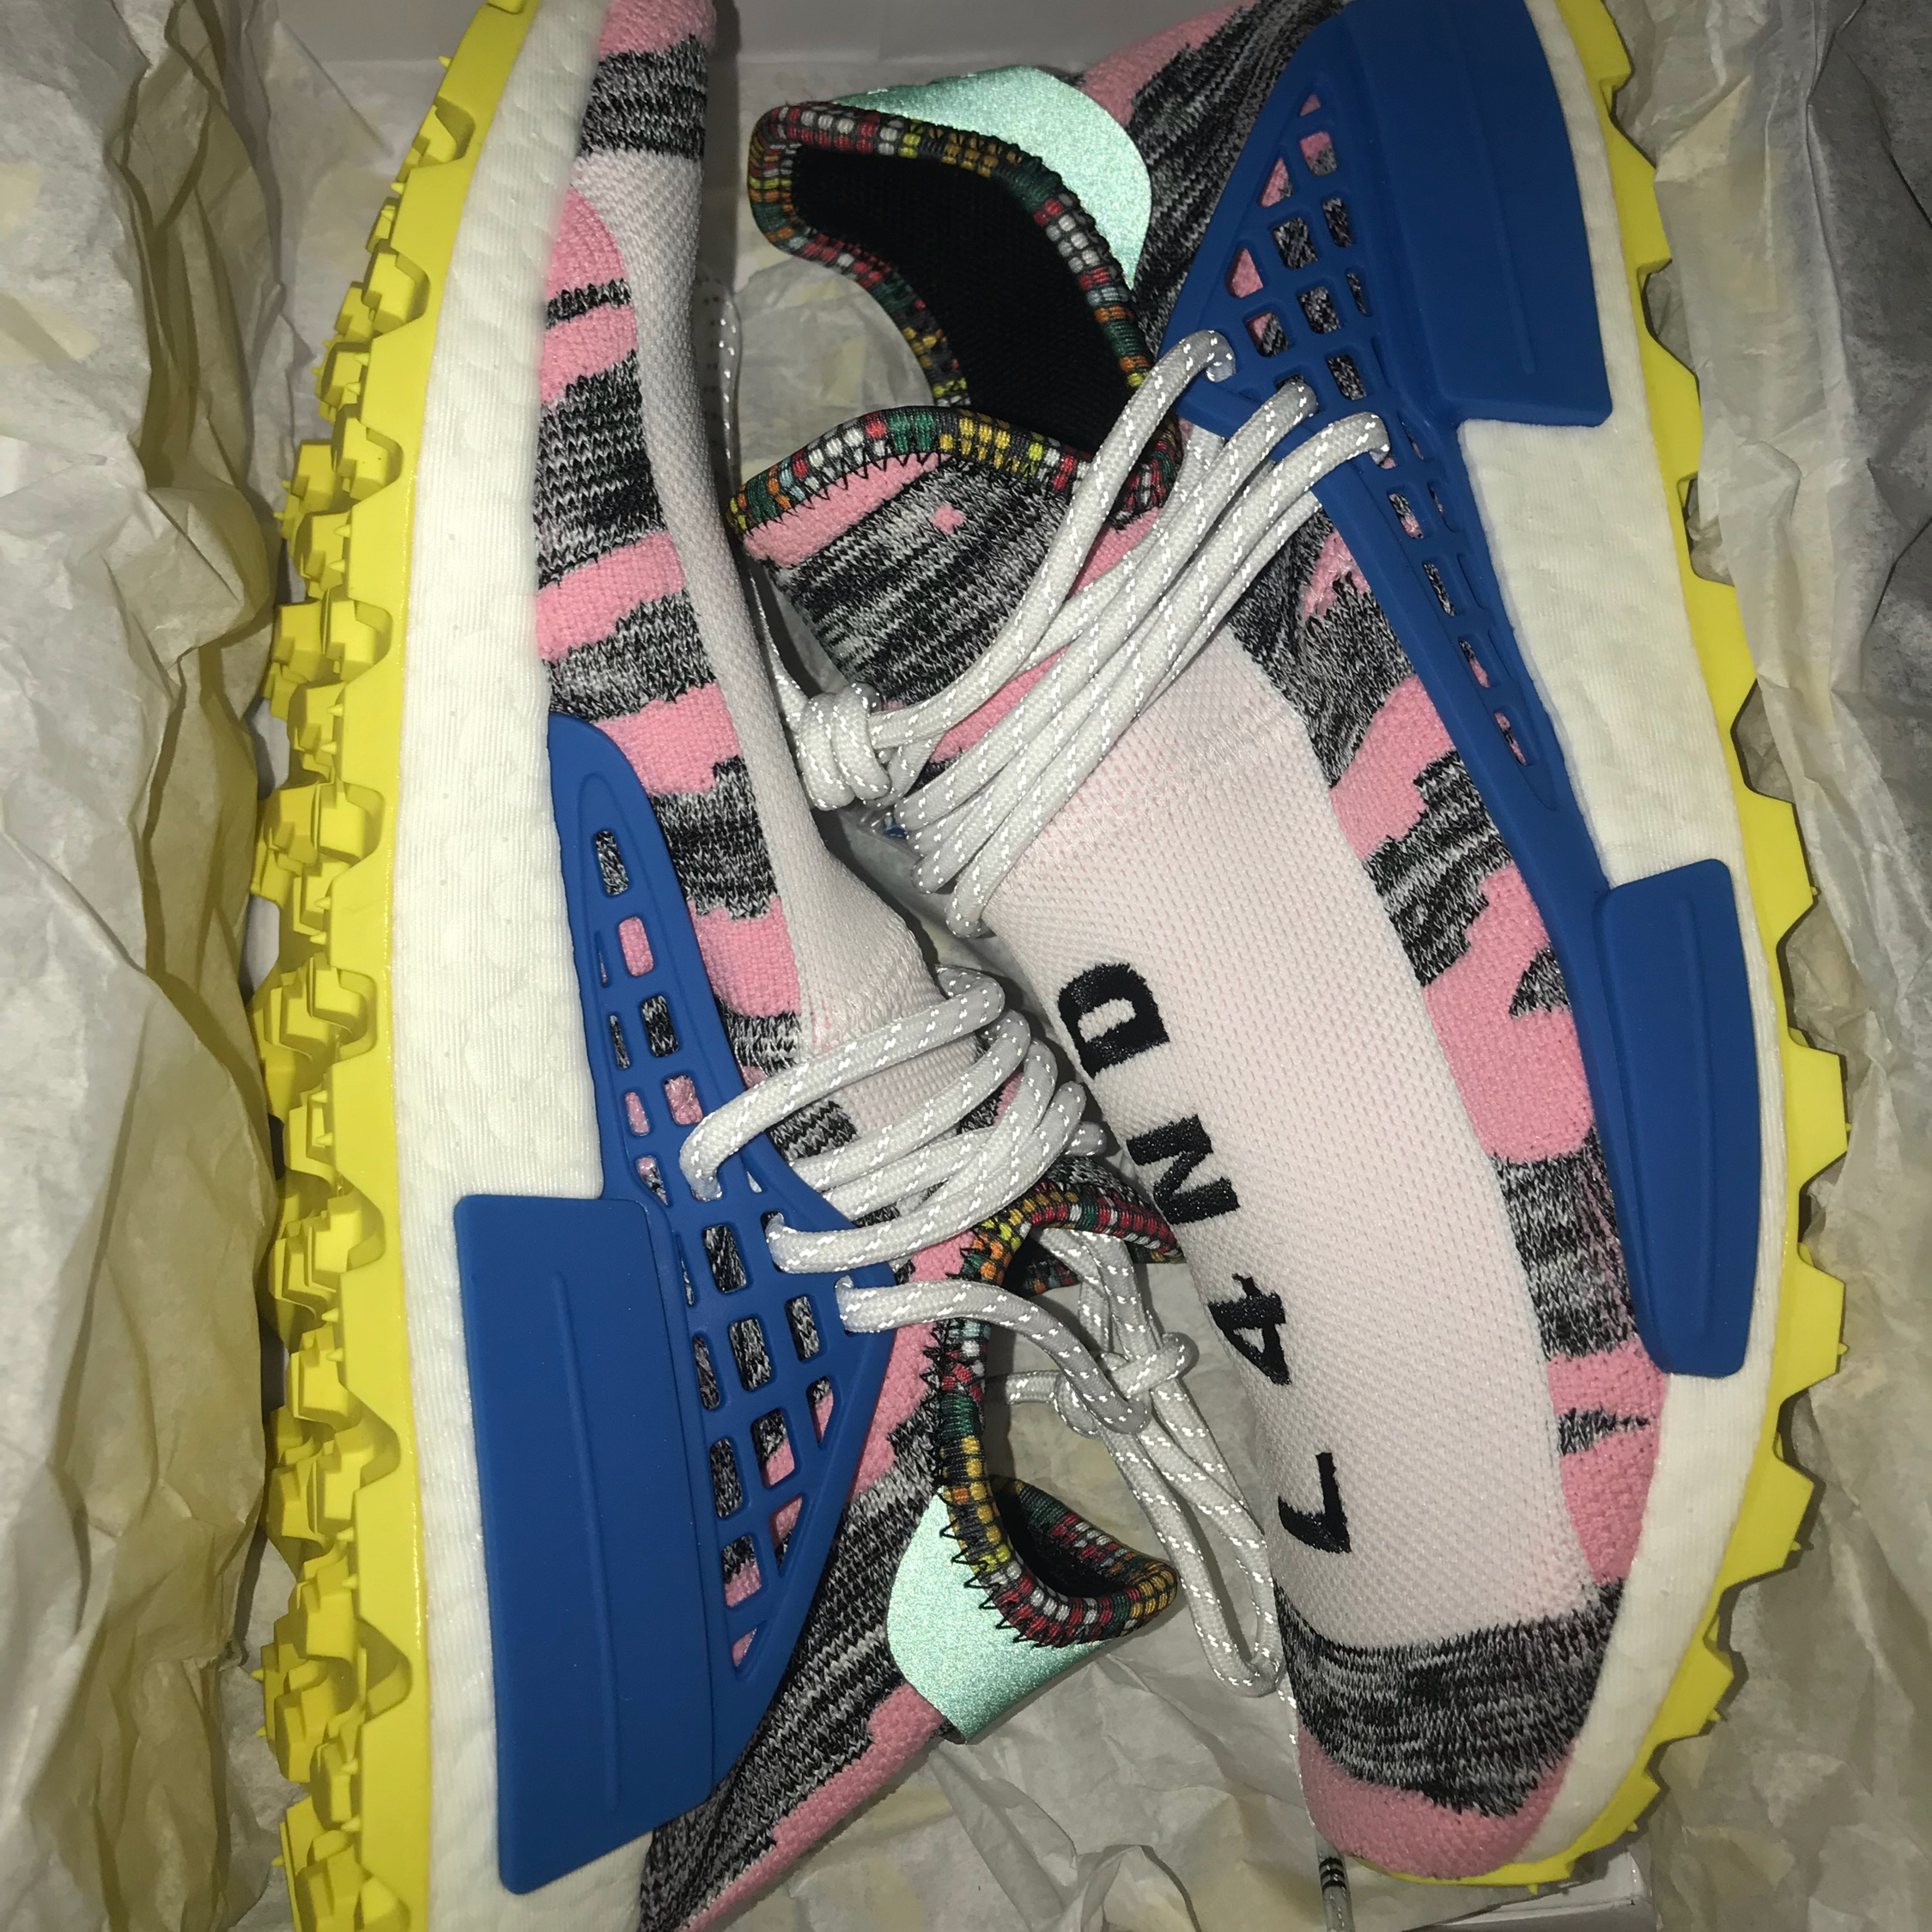 reputable site 70242 a89f9 Adidas Pharrell Williams Human Race Shoe